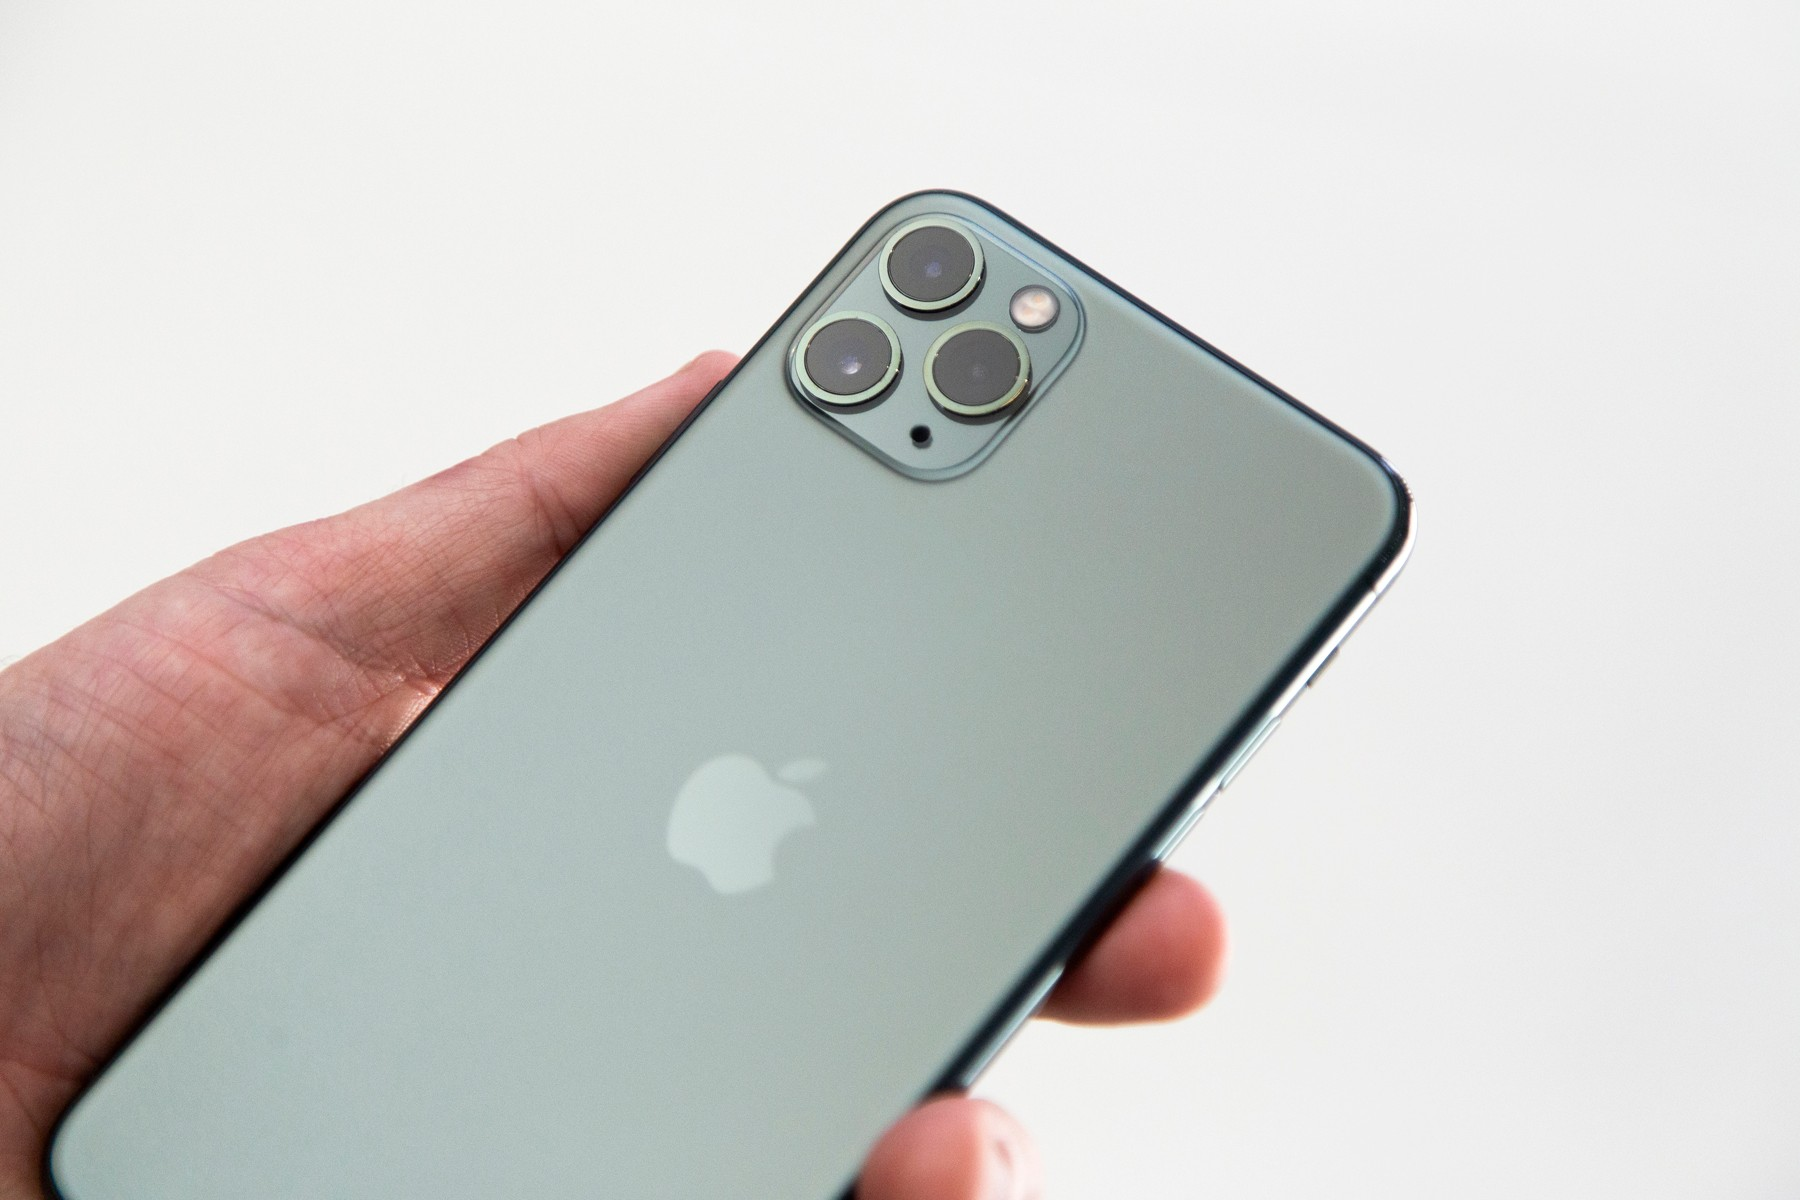 Apple iPhone 11 Keynote Event Highlights and Info